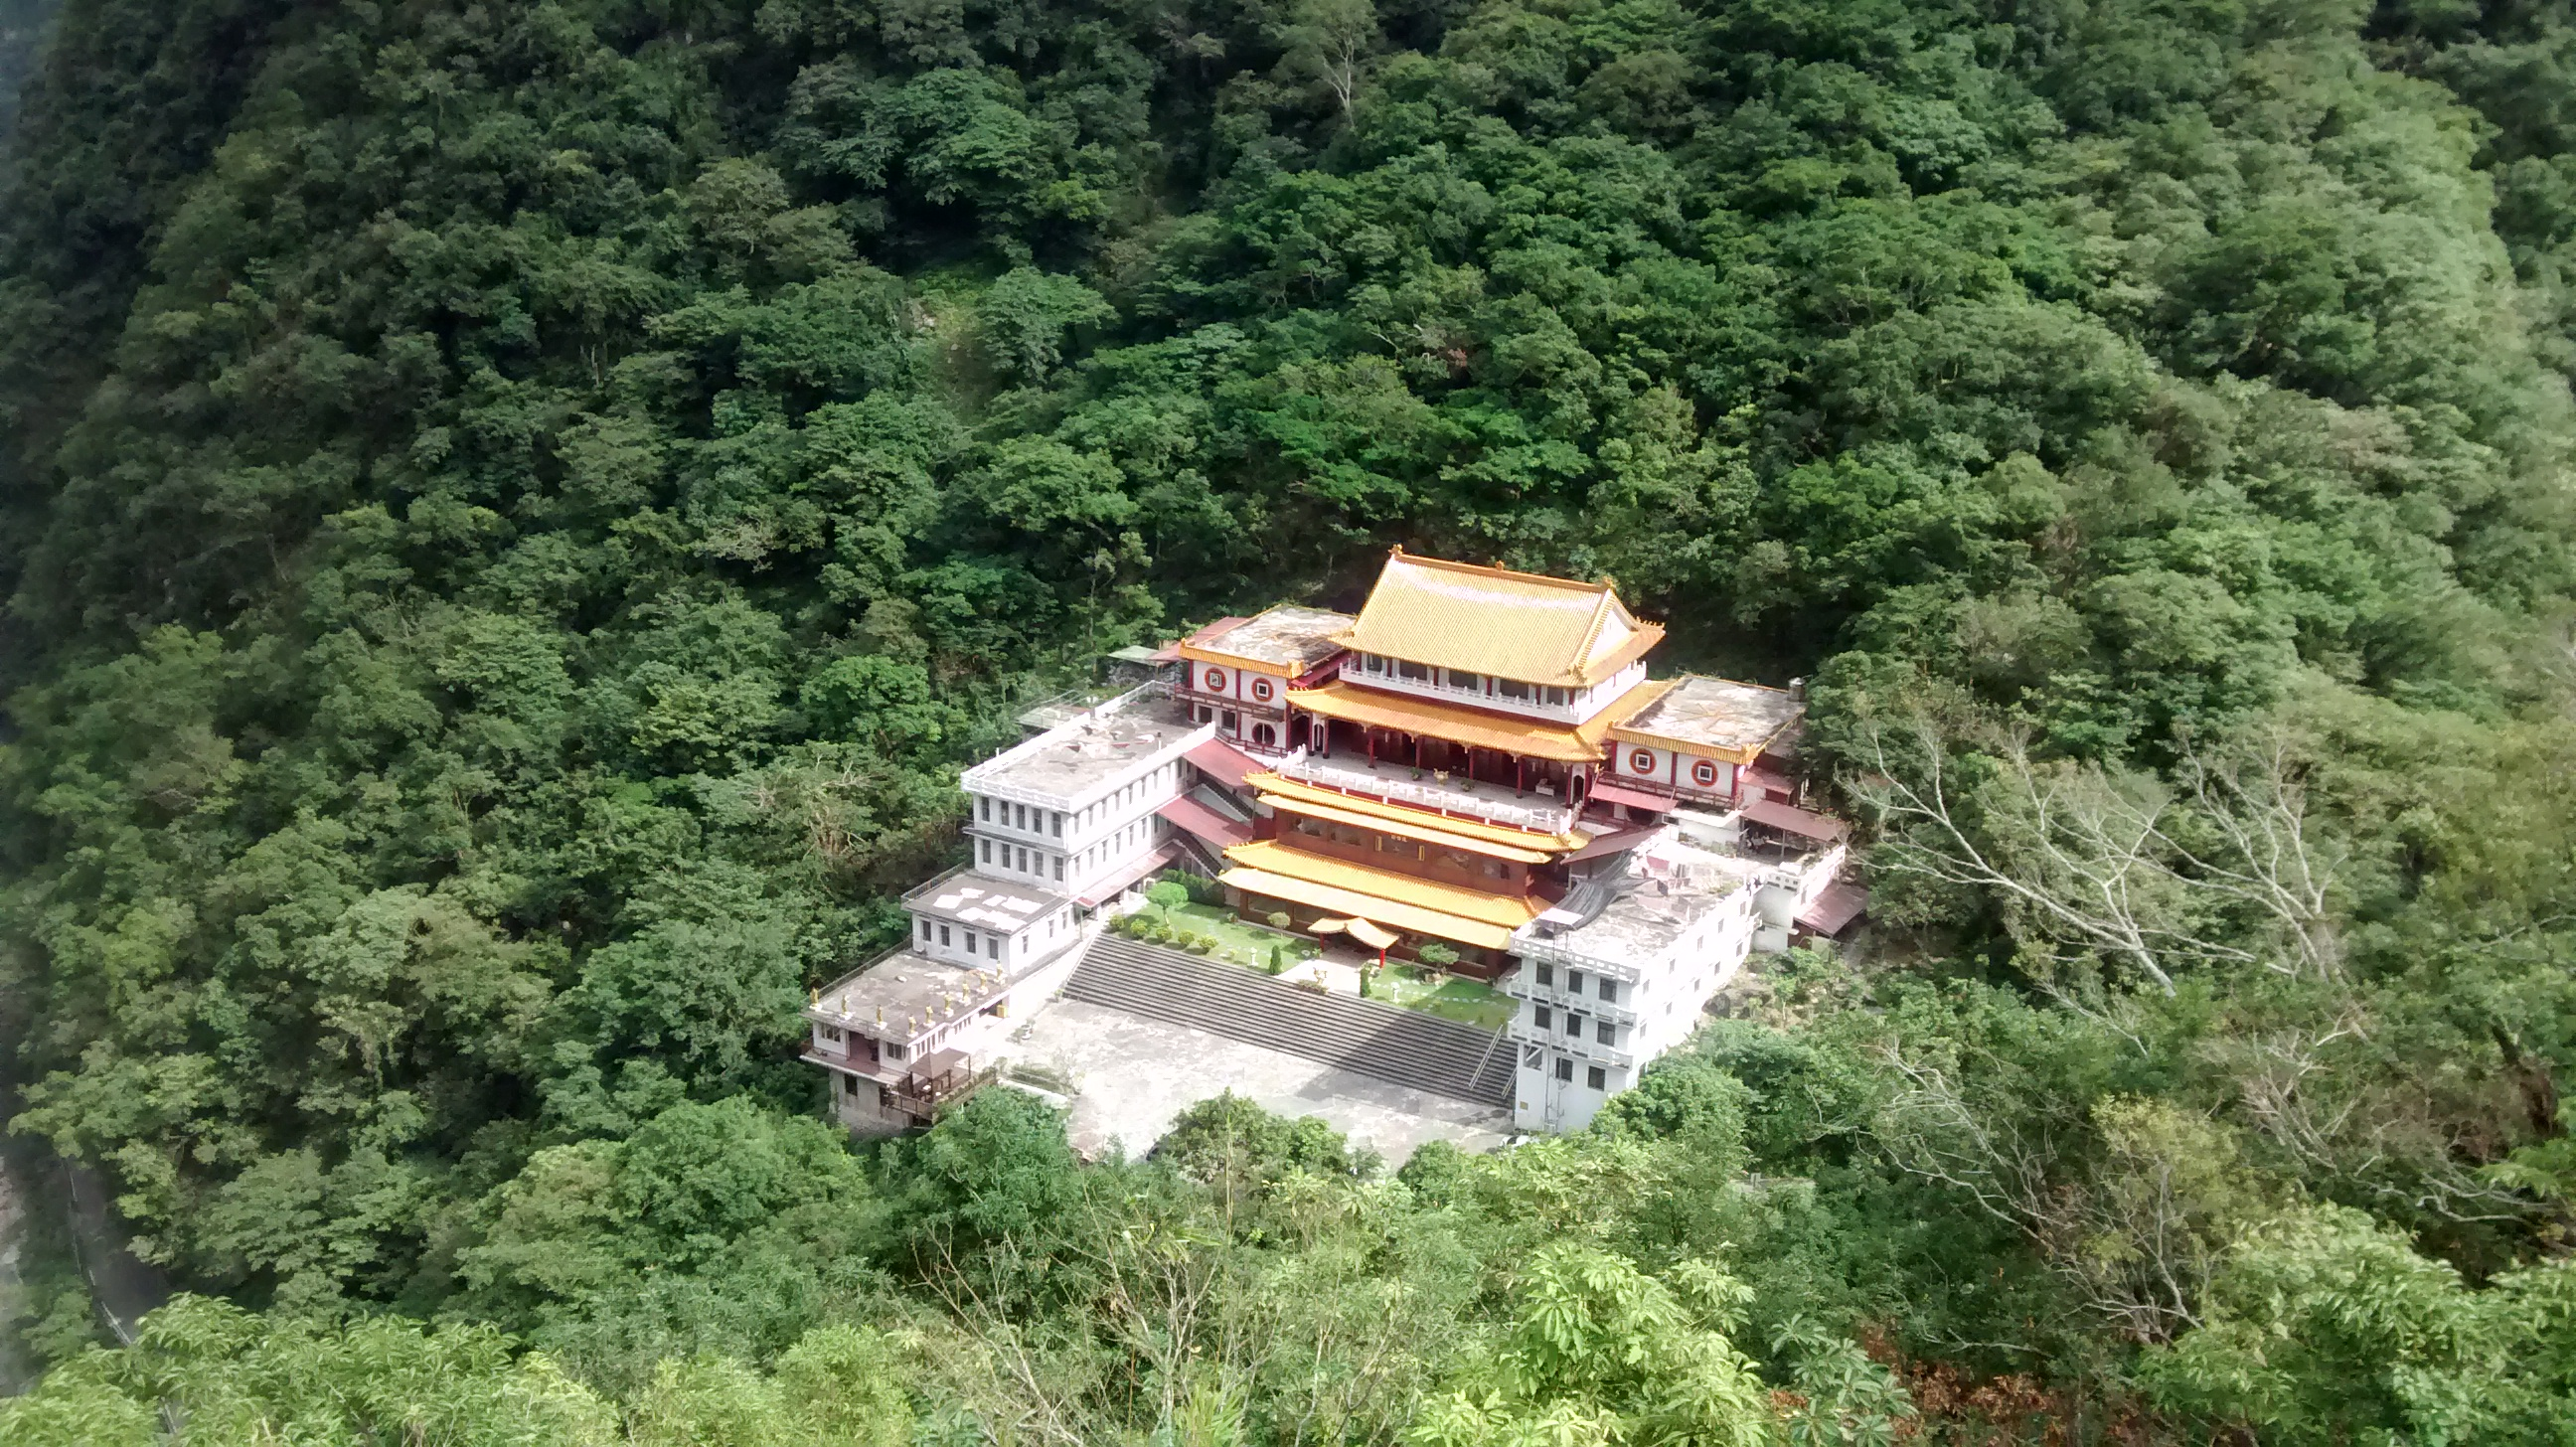 Above a Buddhist Temple at Taroko Gorge